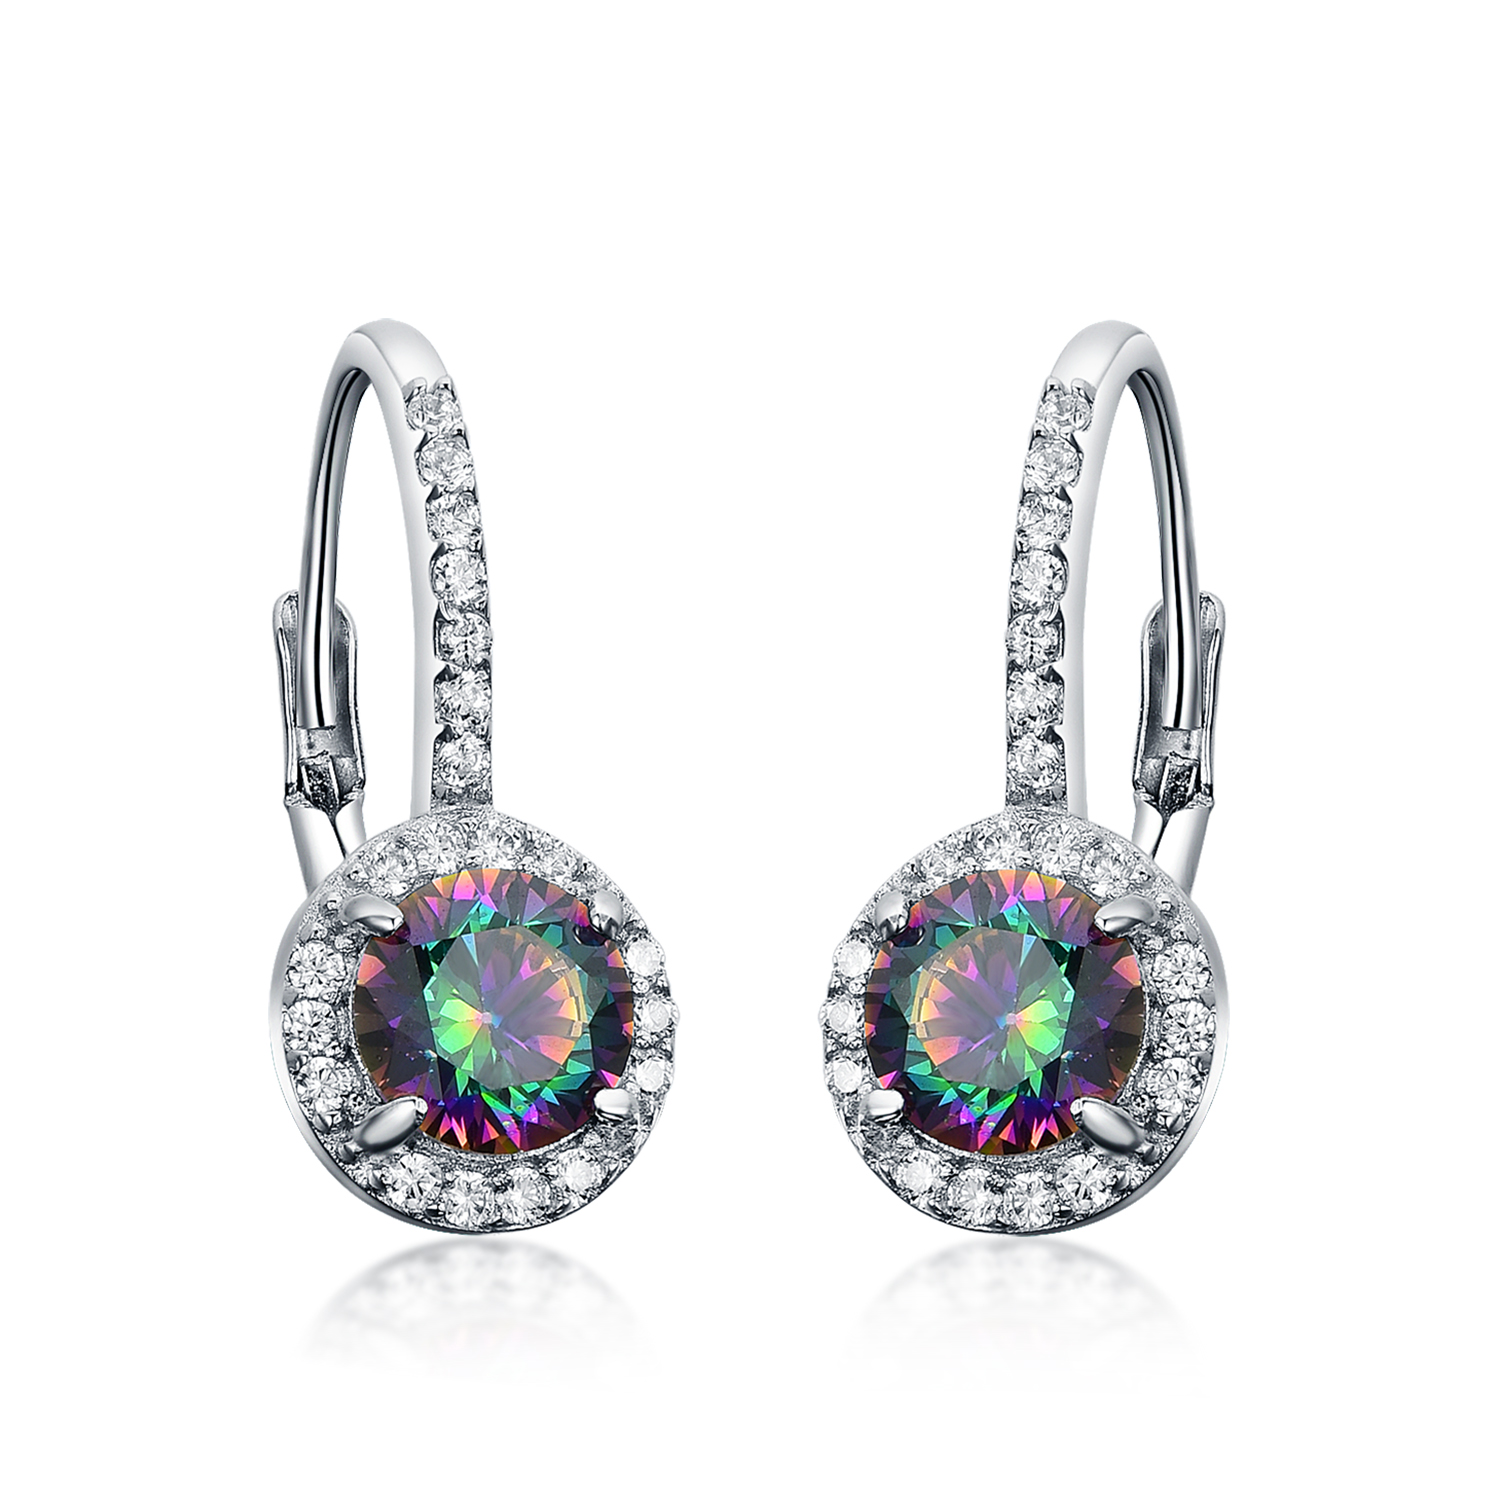 ER4560 Mystic fire CZ Leverback Earring with Rhodium in Sterling Silver from Jewelry exporter in China